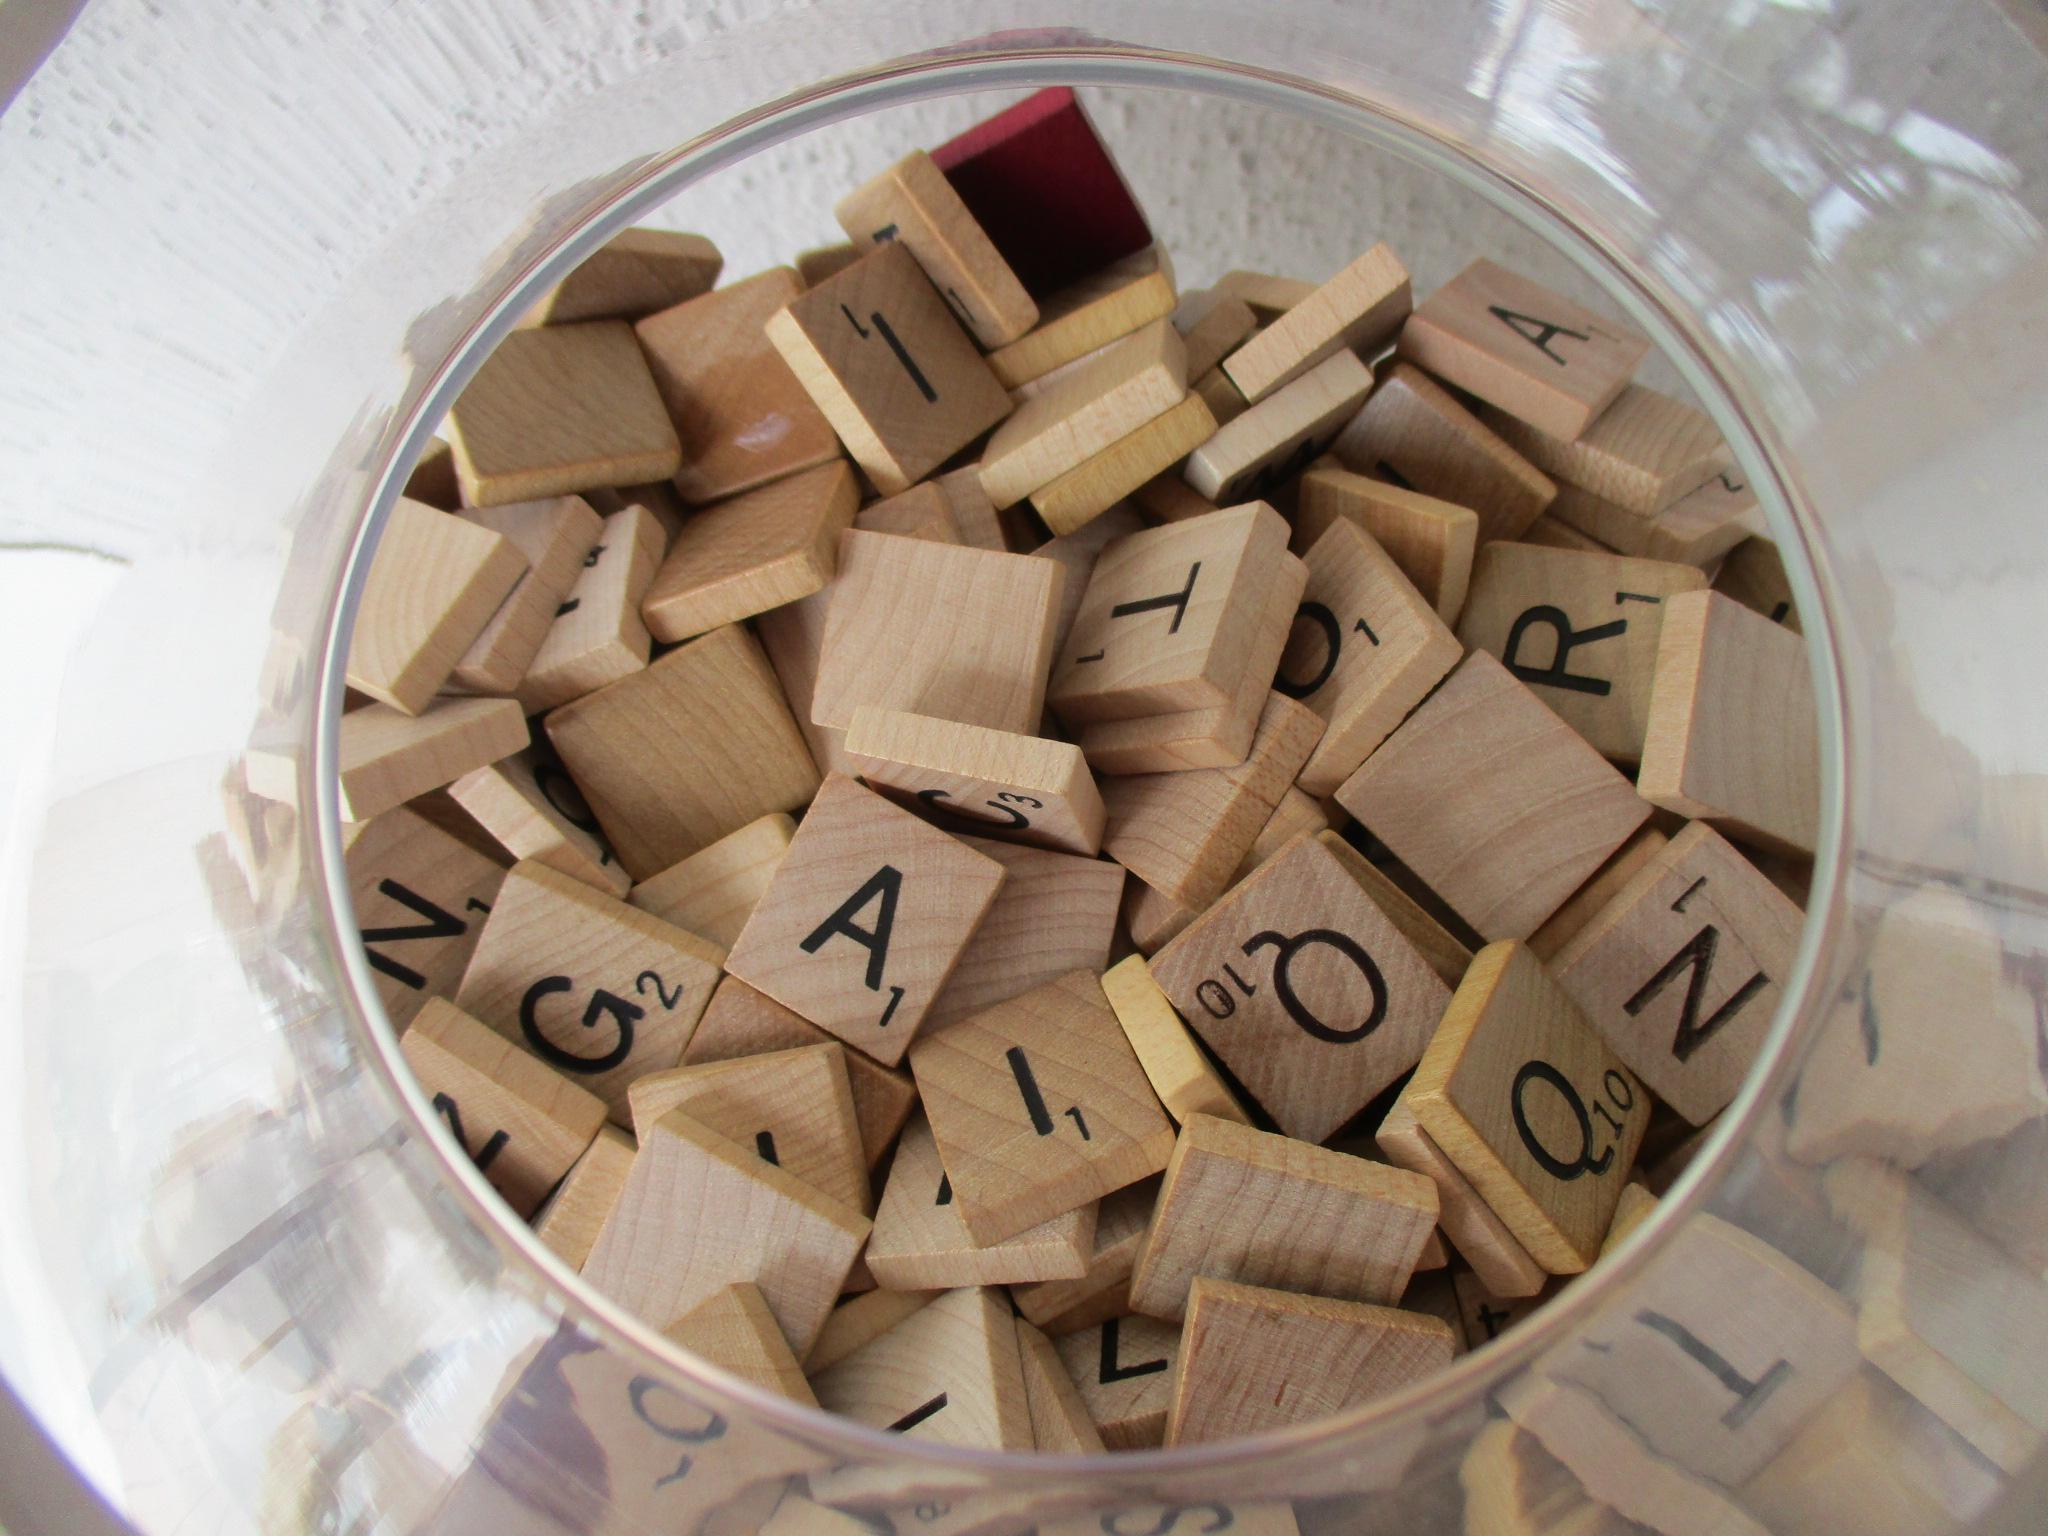 apothecary glass jar with scrabble tiles image 3 of 8